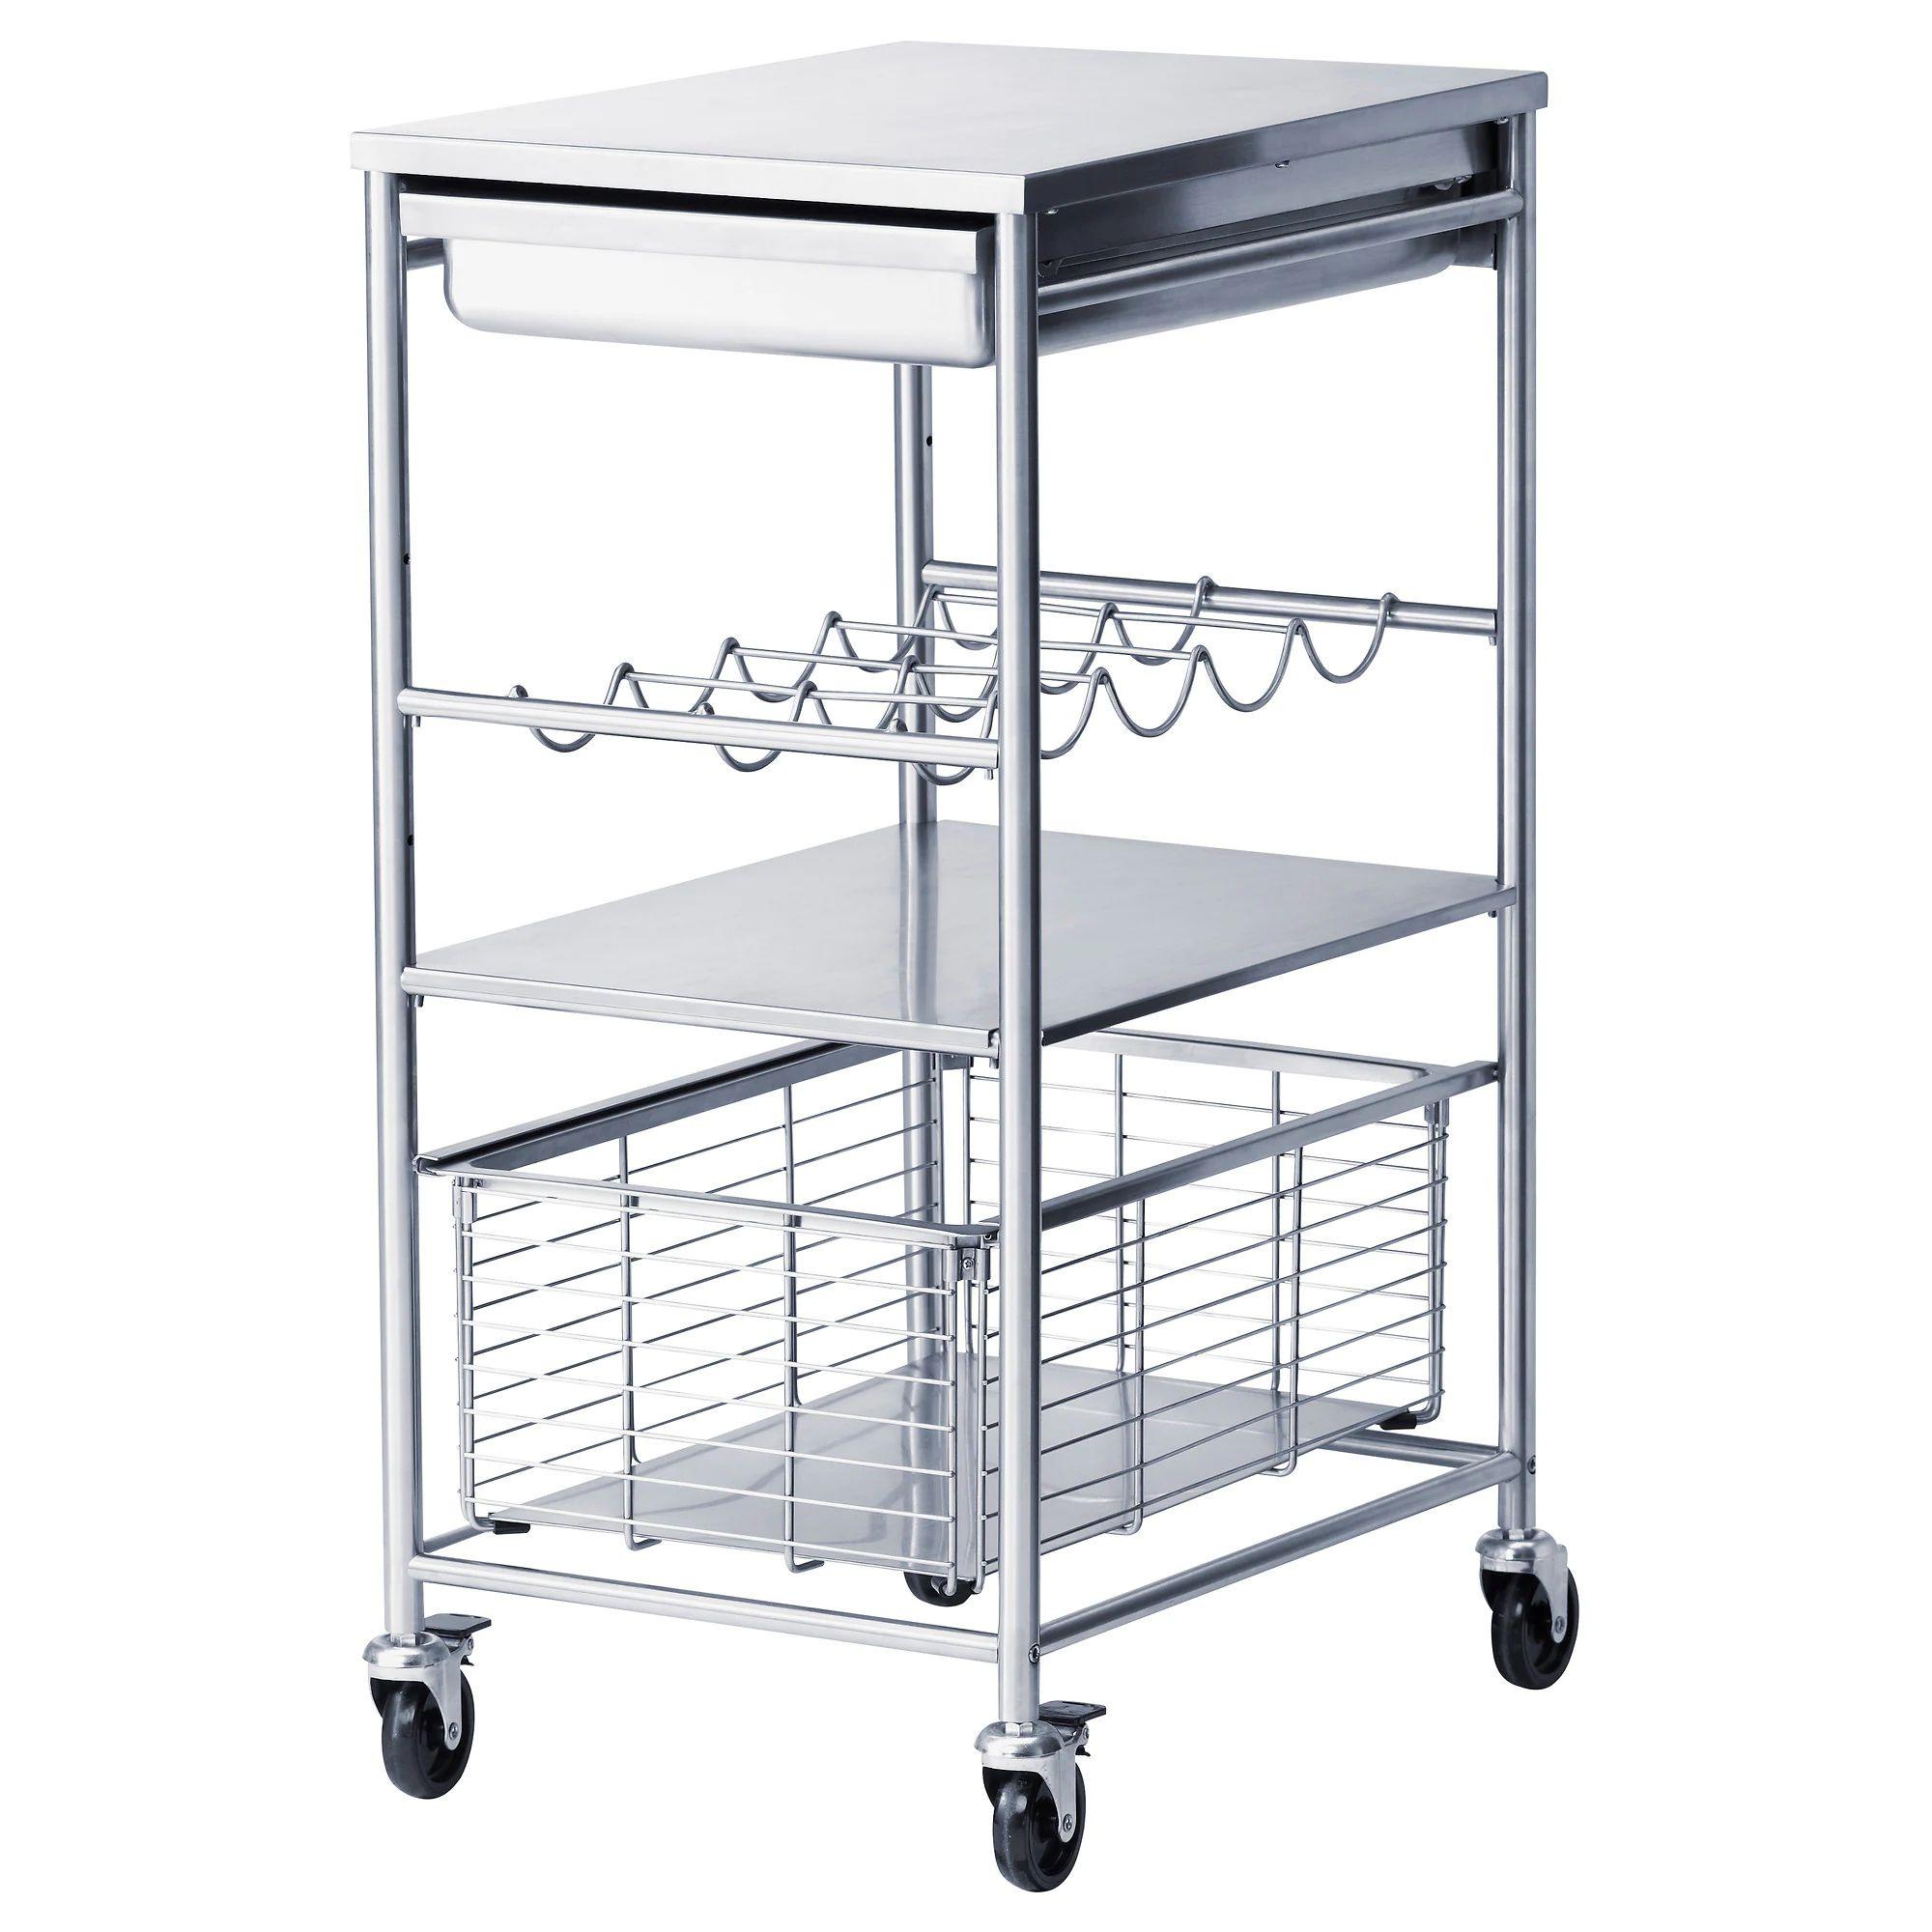 Grundtal kitchen cart stainless steel length 21 1 4 width 16